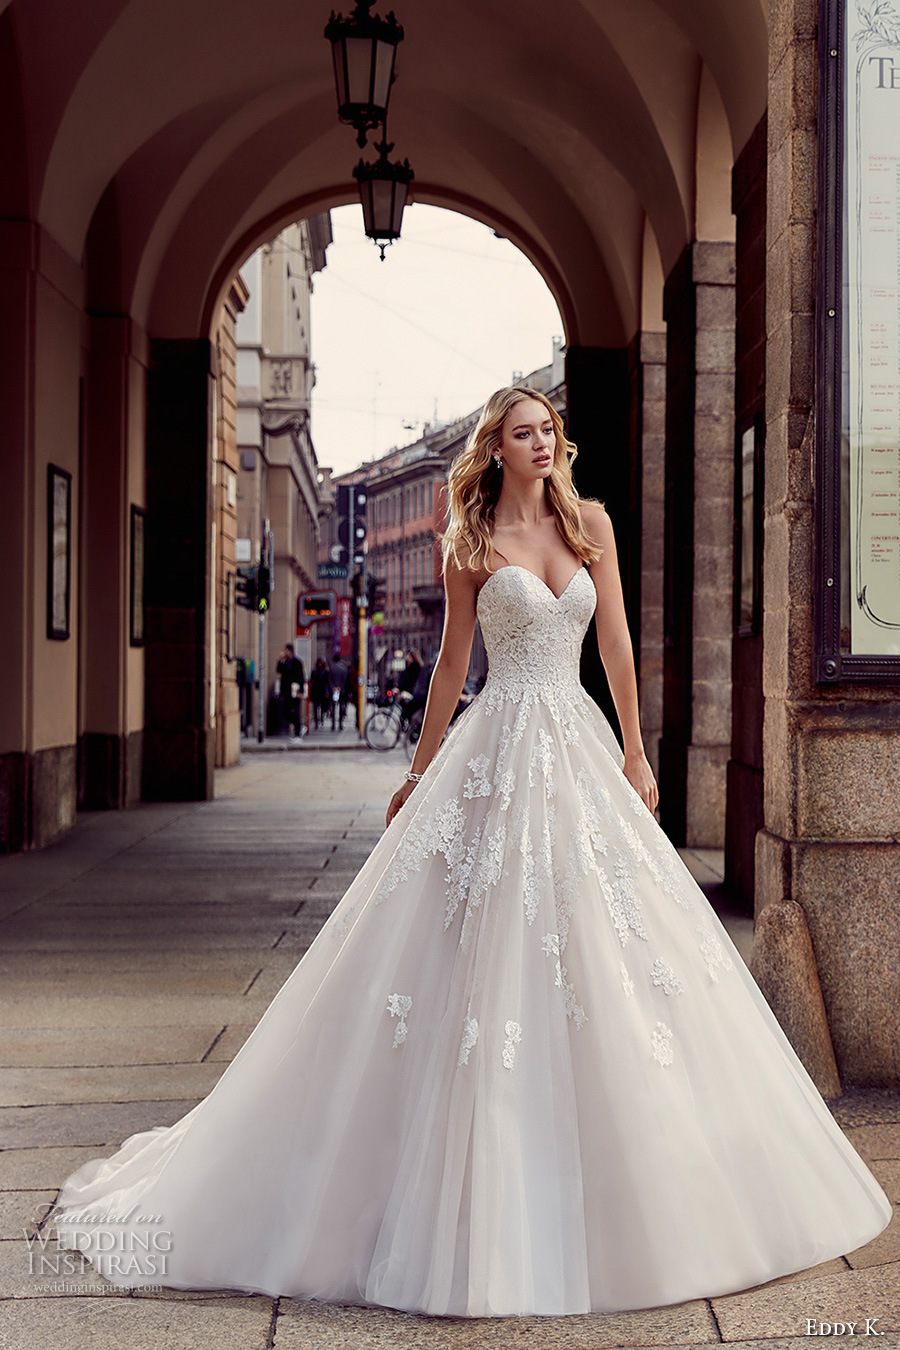 Eddy k 2017 wedding dresses milano bridal collection for Wedding dress heart shaped neckline